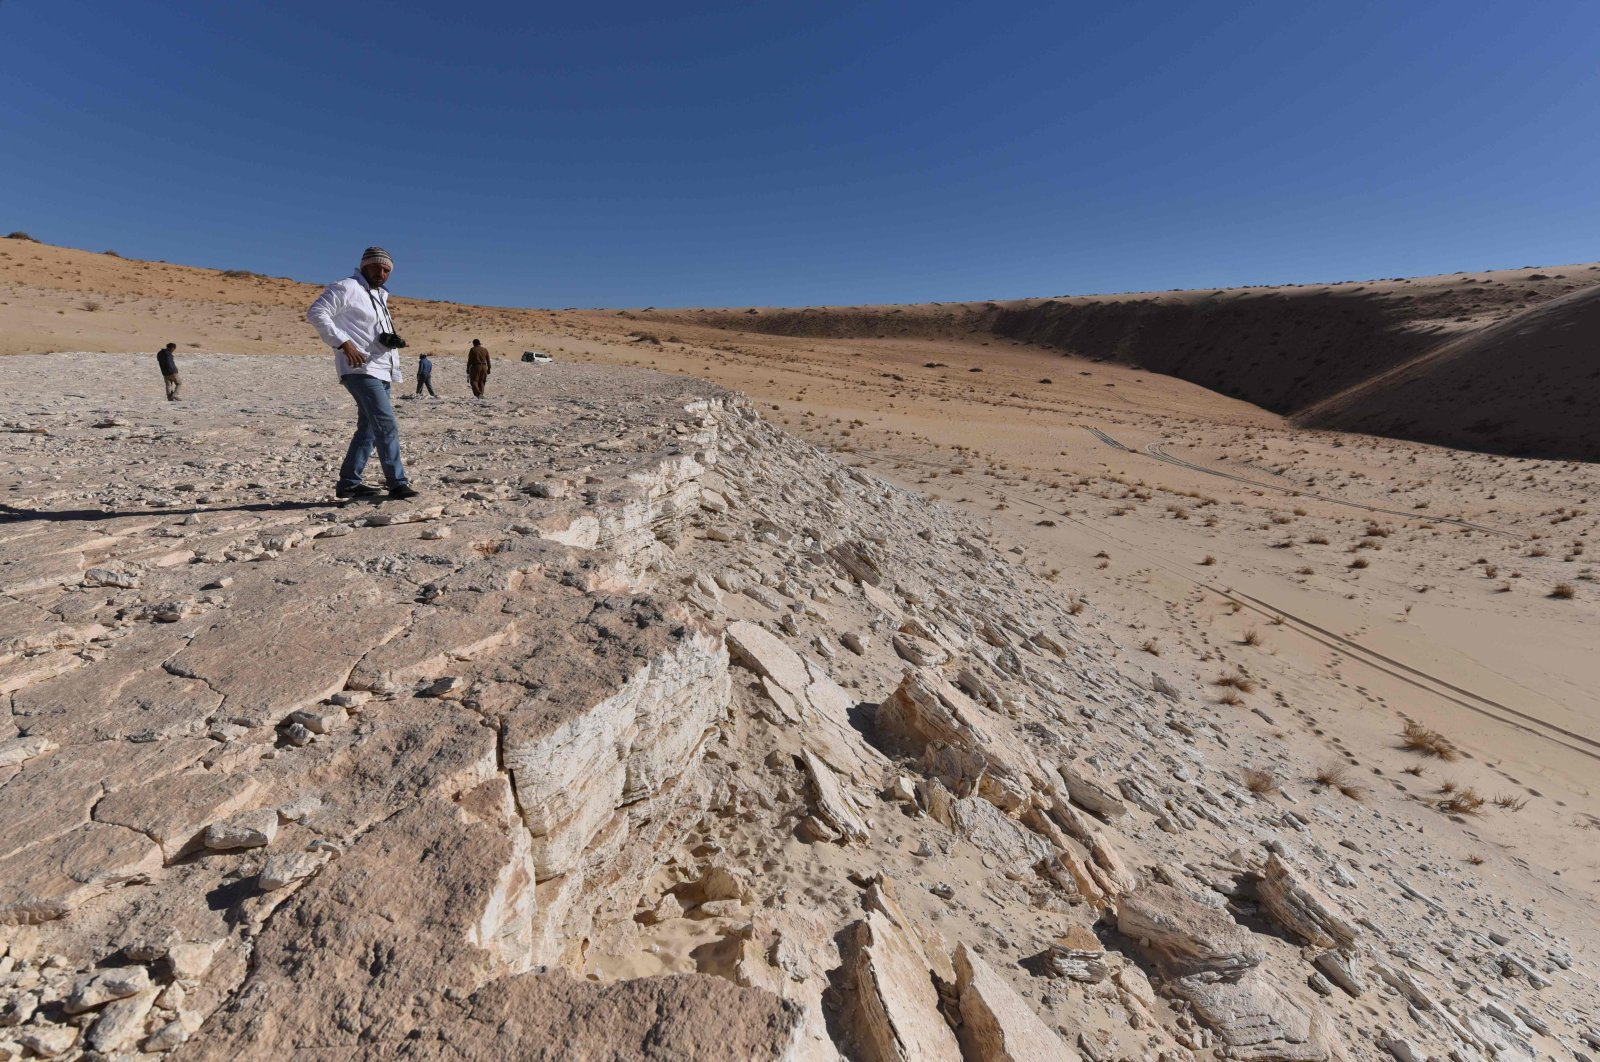 This undated handout photo obtained September 16, 2020 shows a view of the edge of the Alathar ancient lake deposit and surrounding landscape. (AFP Photo)